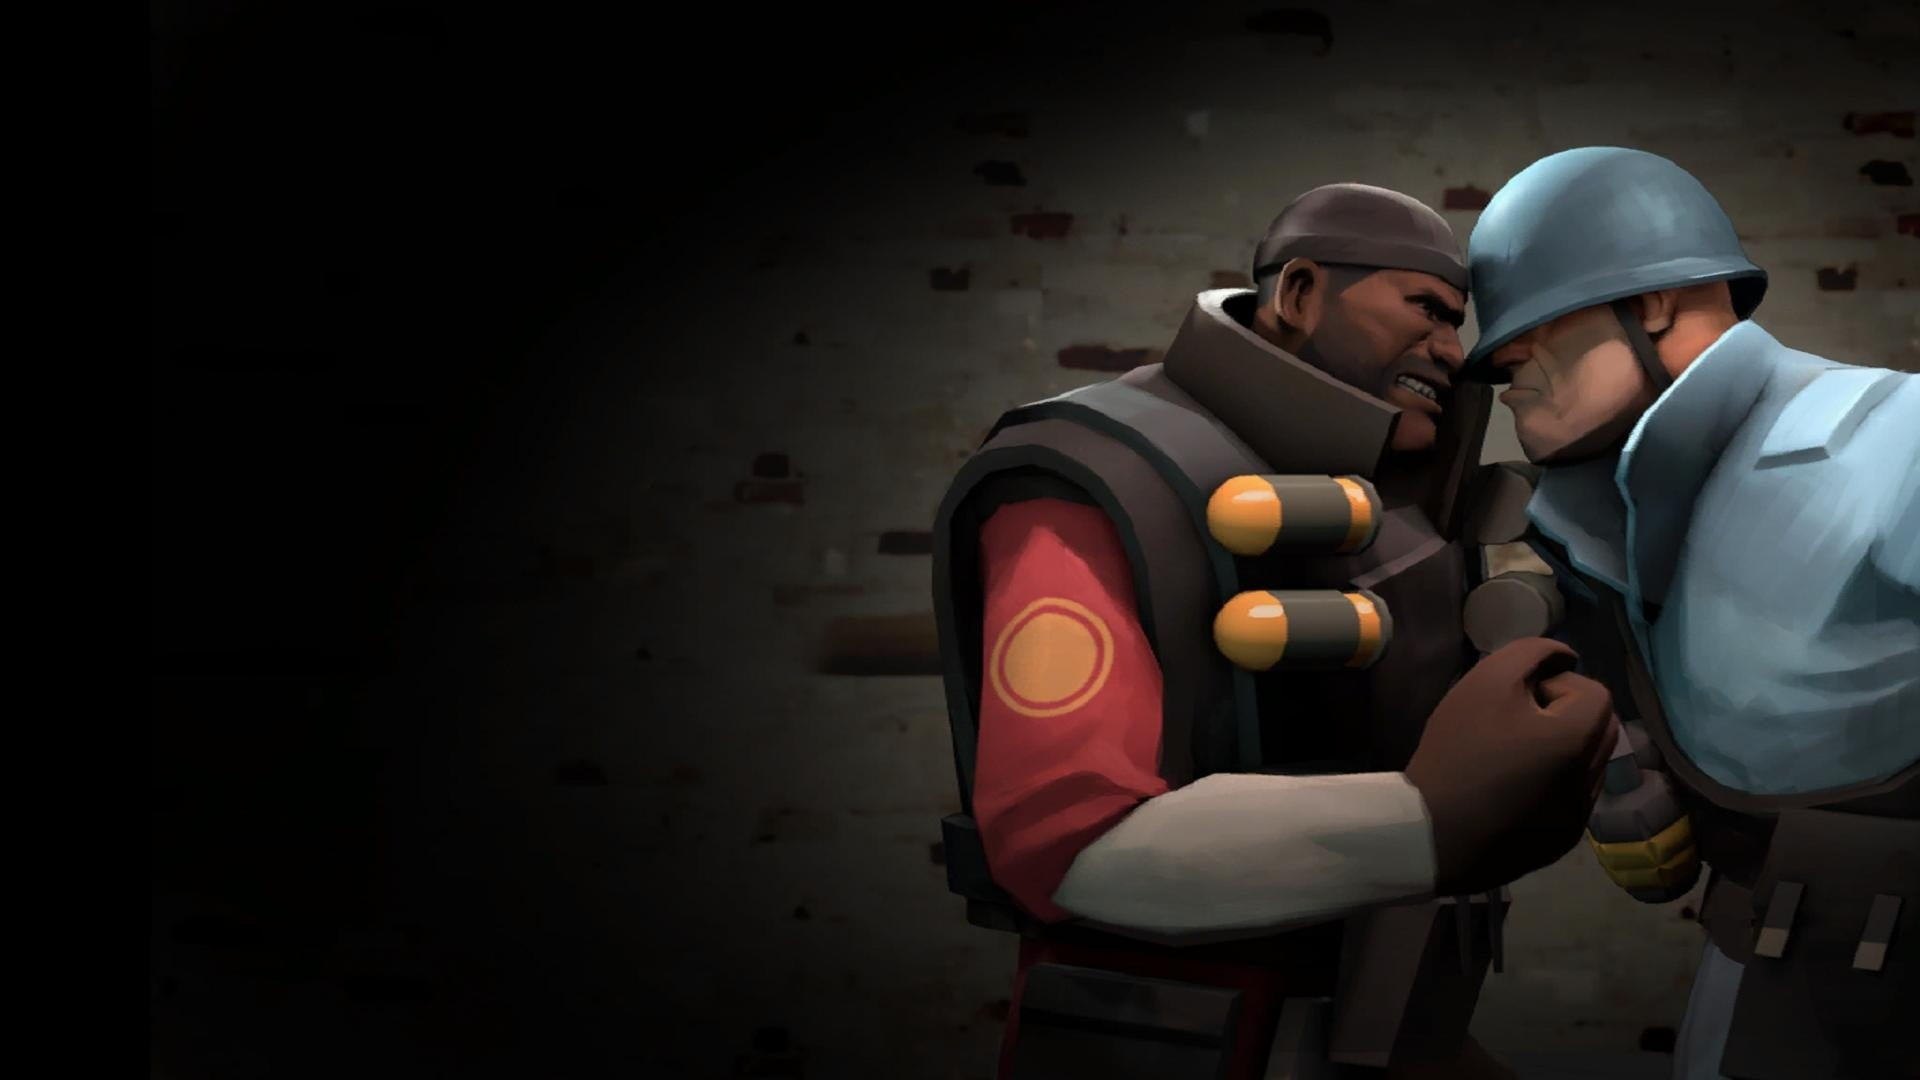 Two man character digital wallpaper Team Fortress 2 soldier 1920x1080